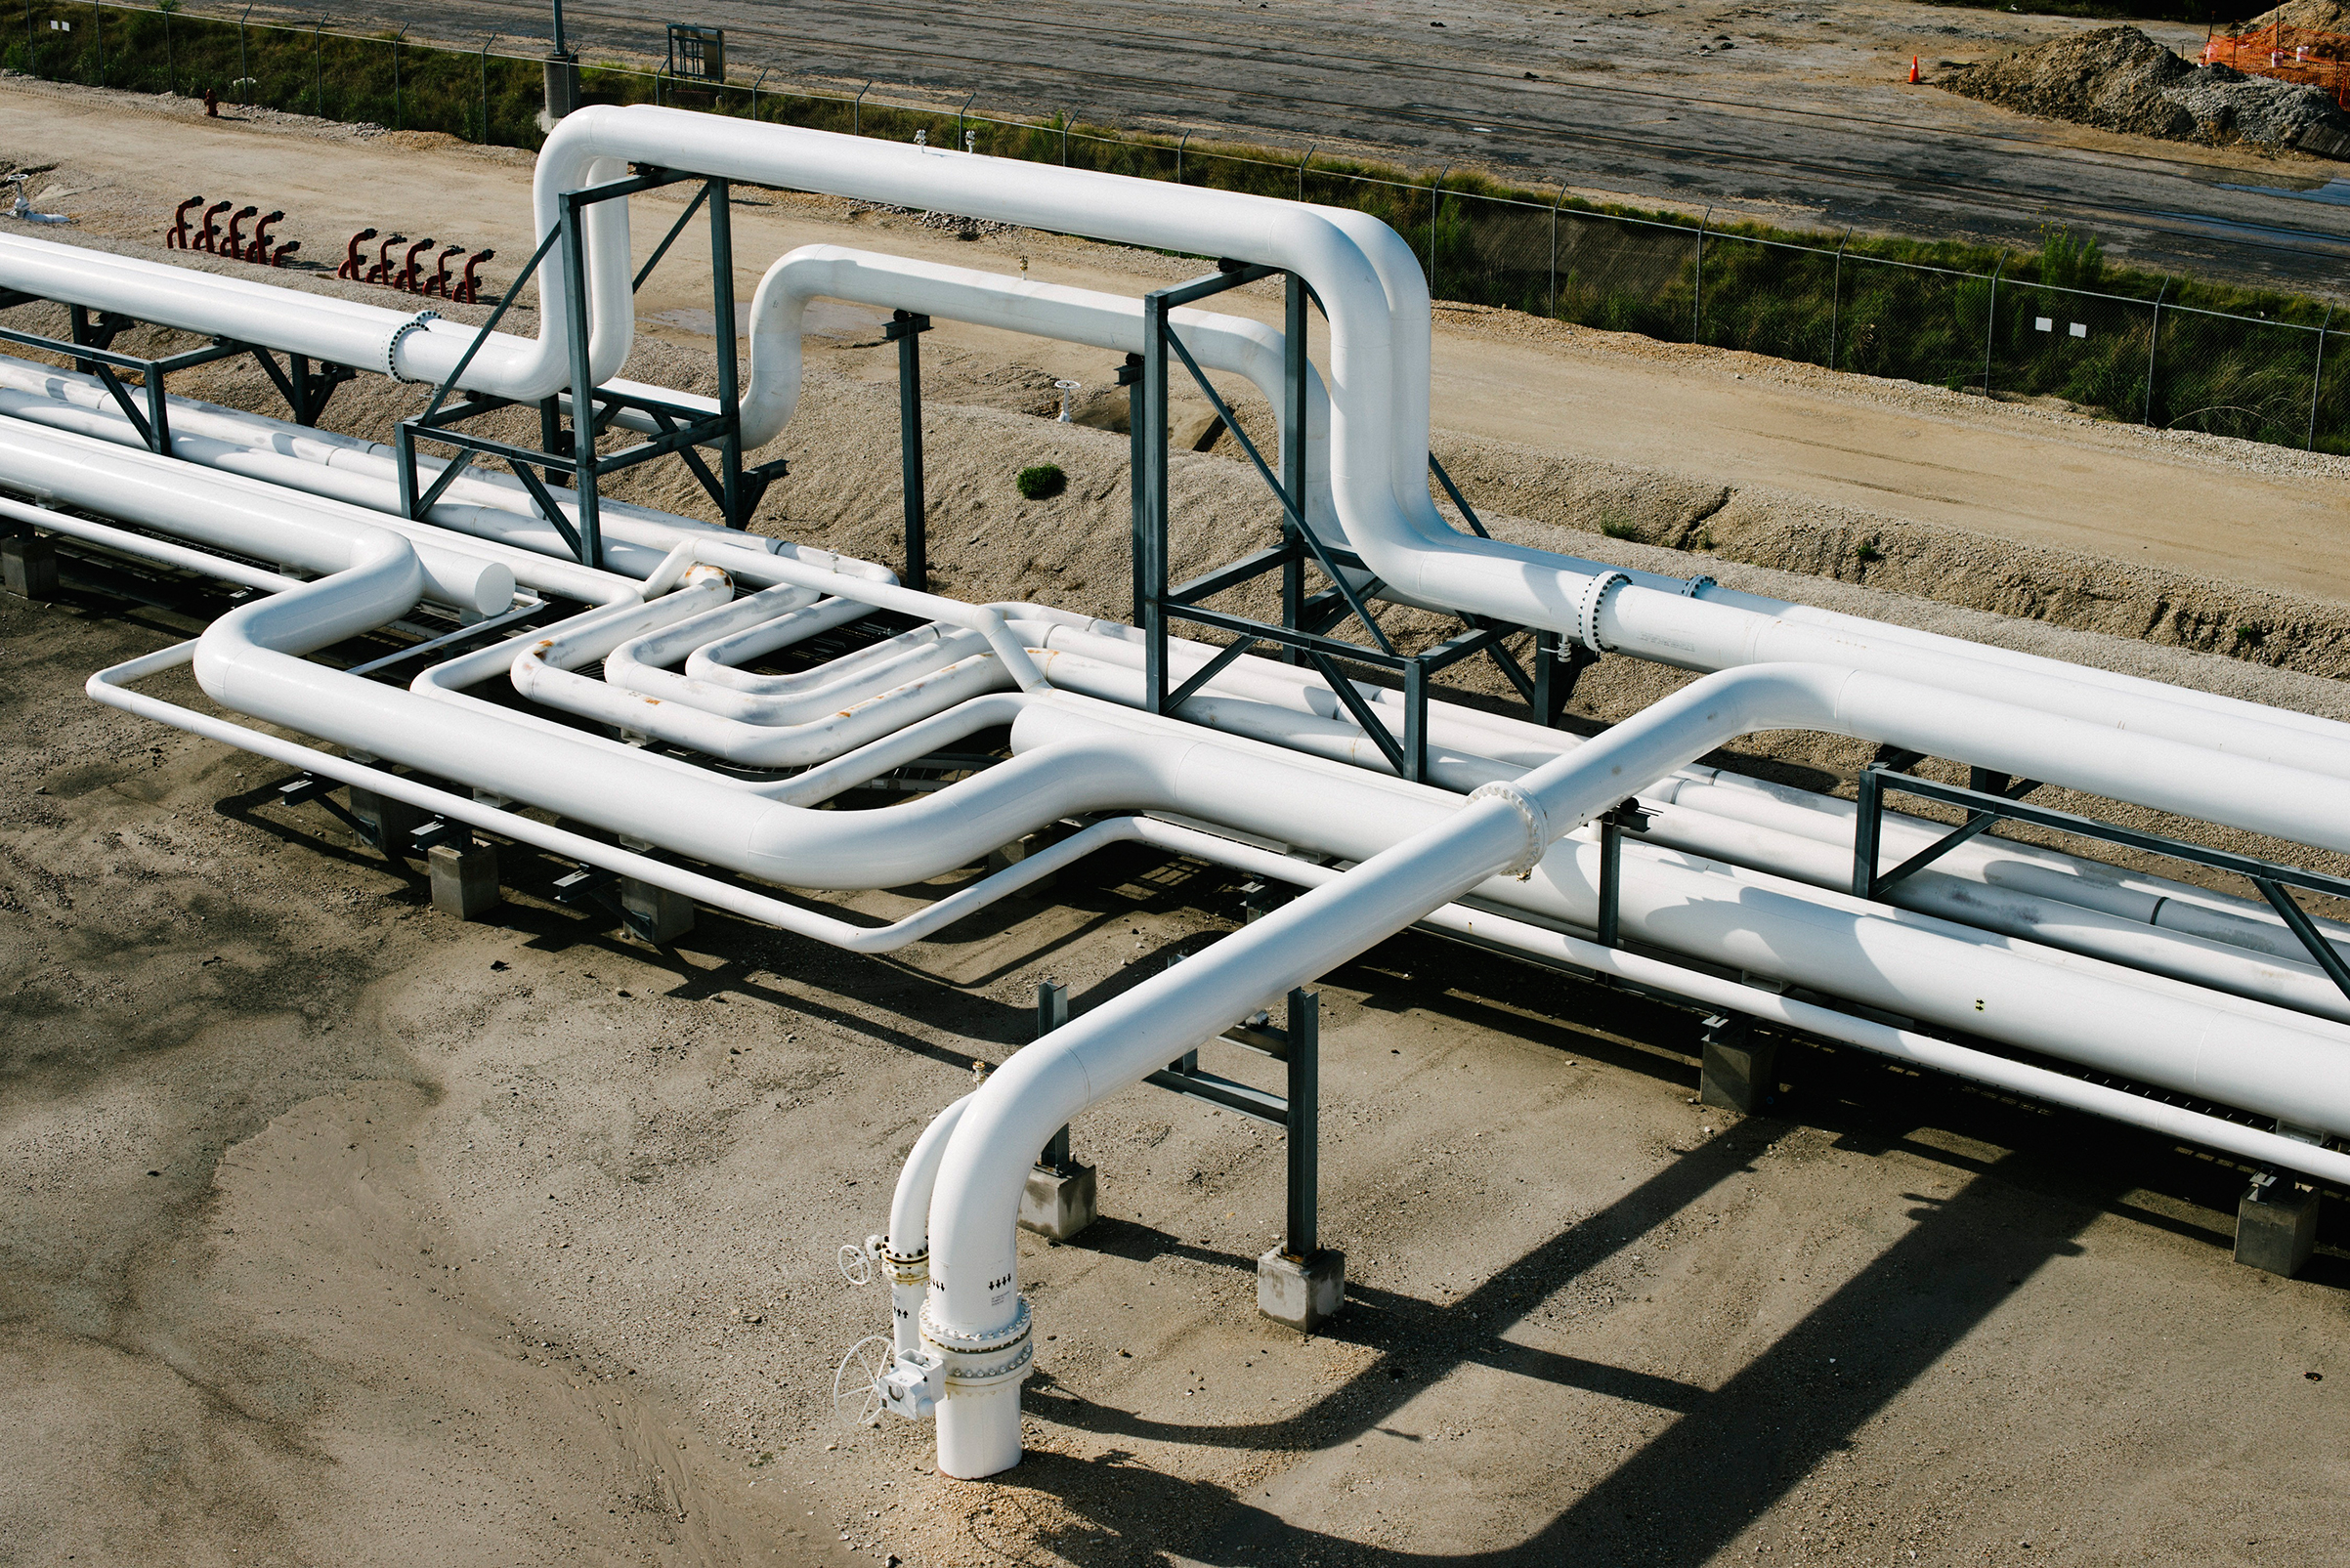 Pipes at NuStar Energy's facility in Corpus Christi, Texas, a key port linking oil from the Permian Basin to the world.